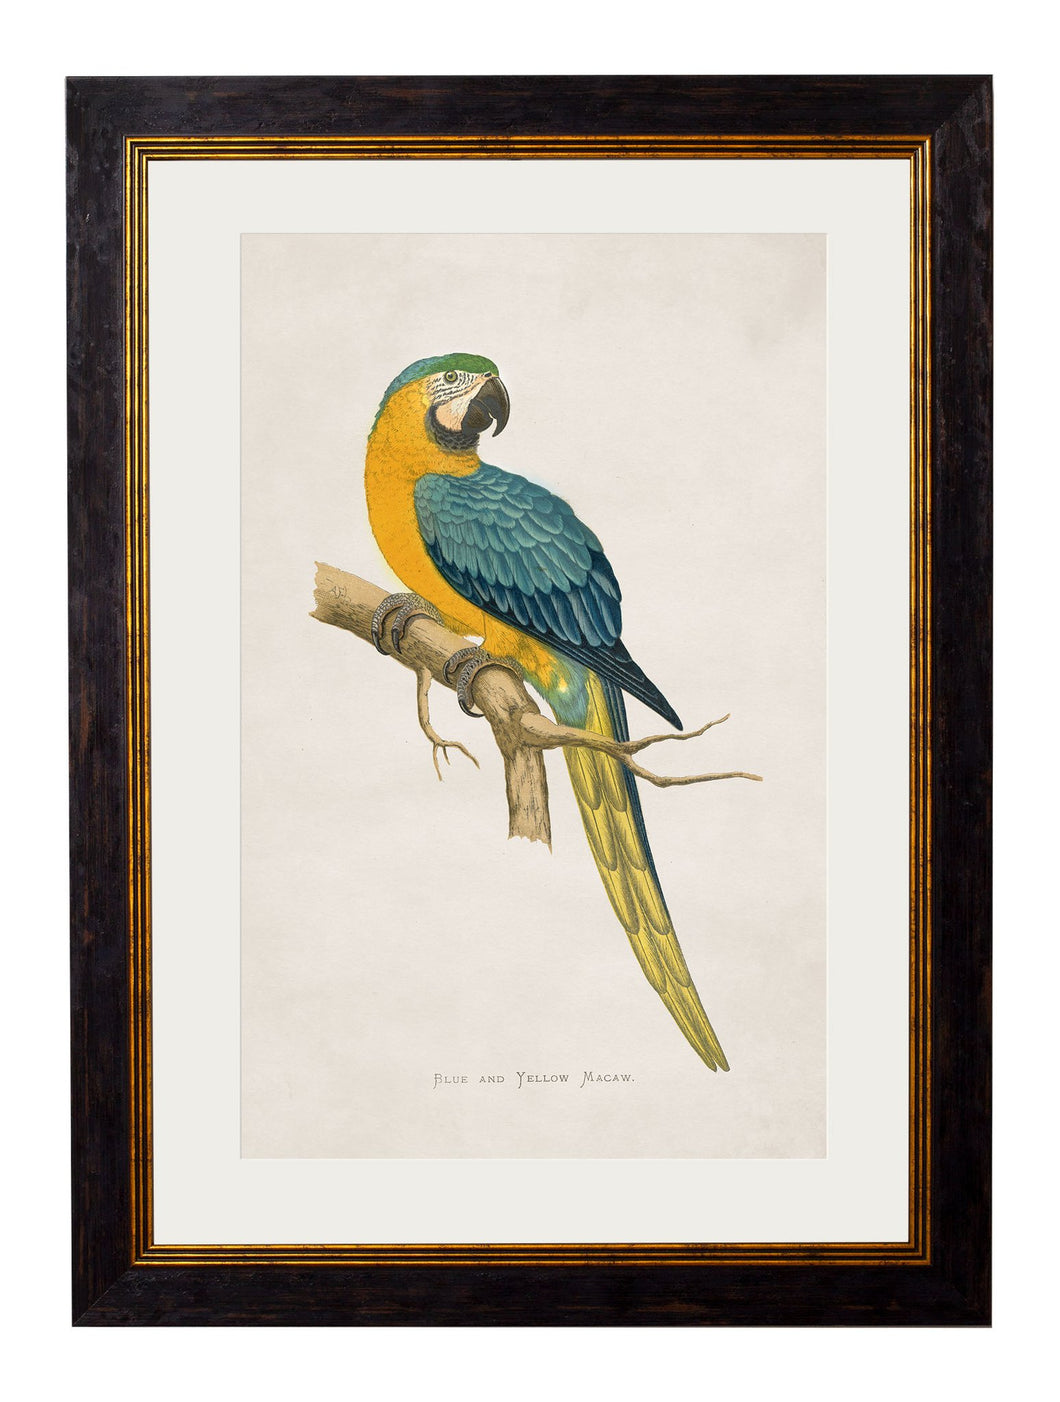 Framed Print - Blue and Yellow Macaw